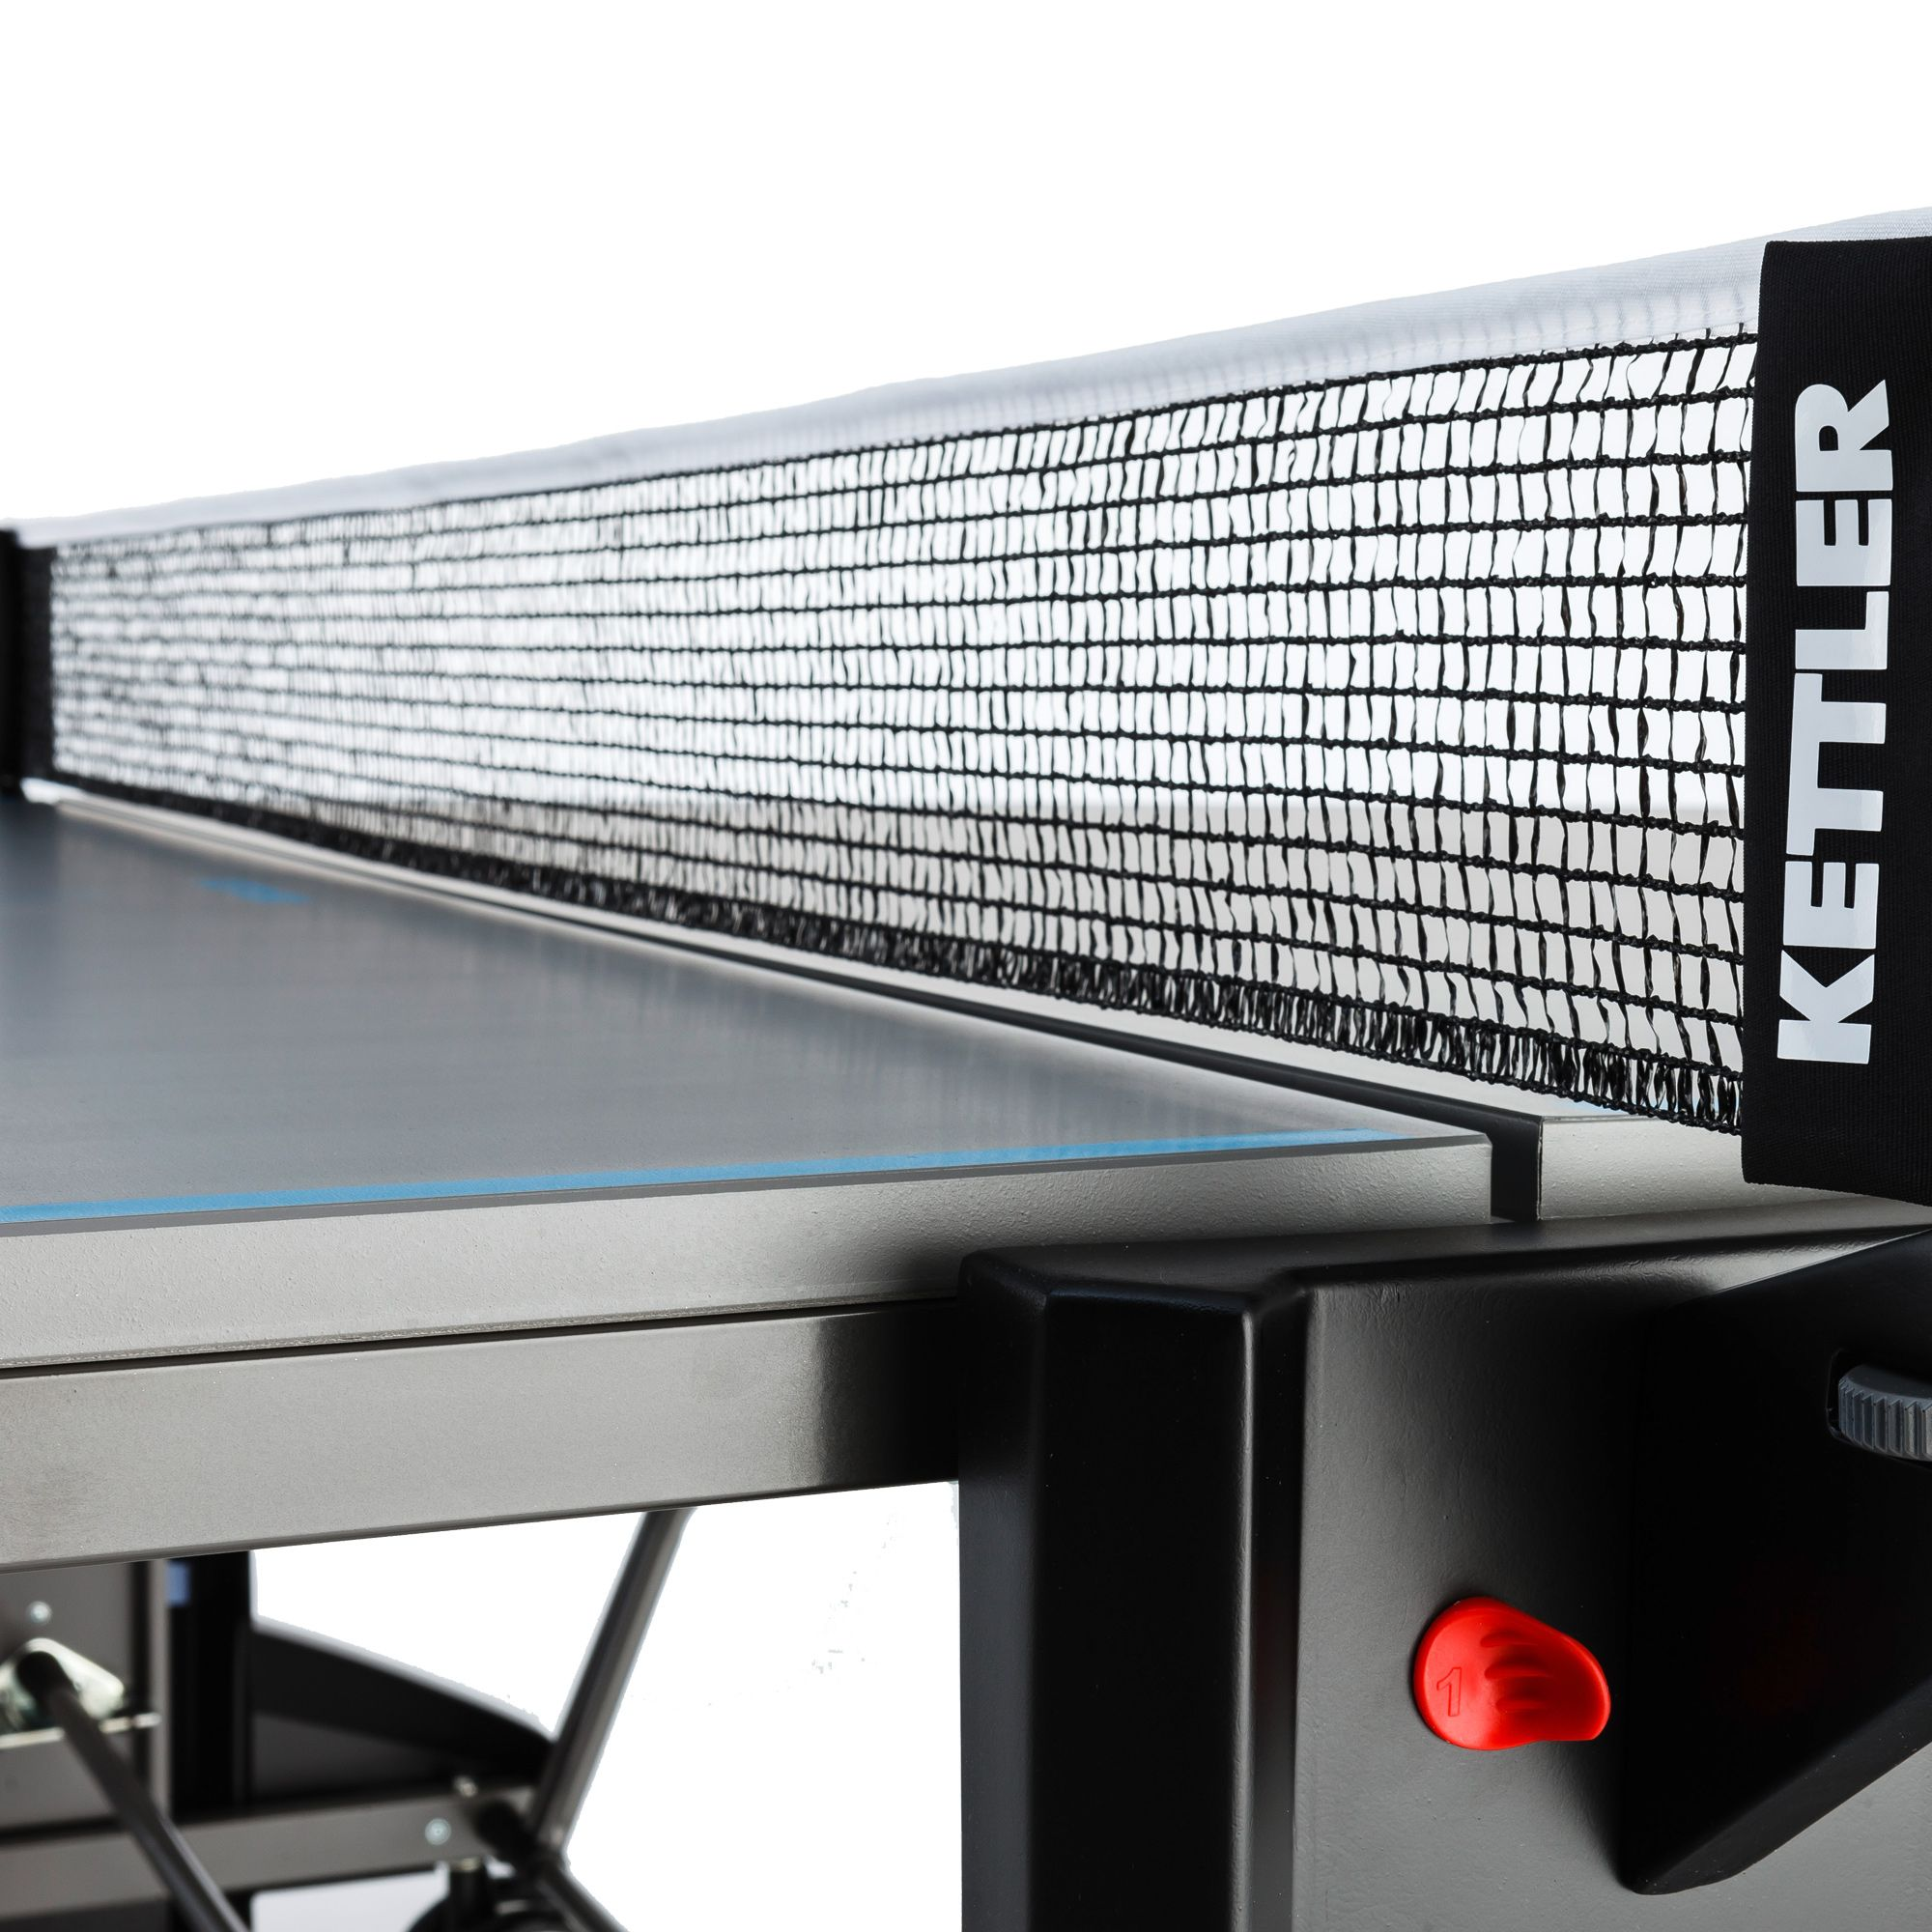 Kettler Classic Outdoor 4 Table Tennis Table